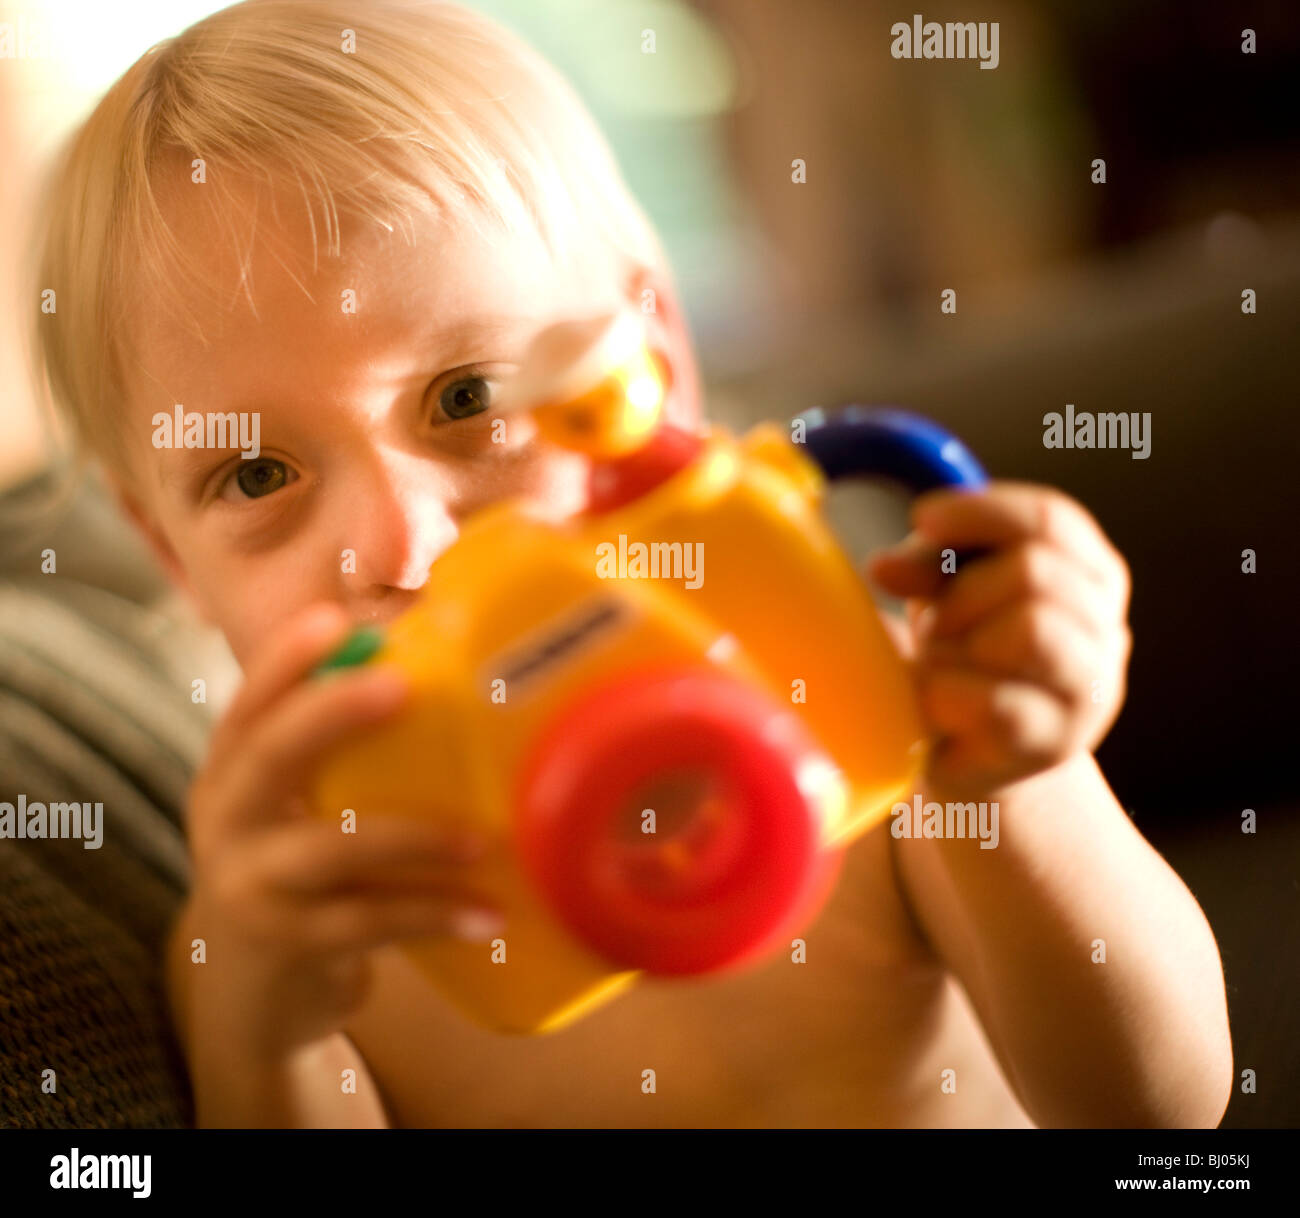 Boy playing with toy camera. - Stock Image